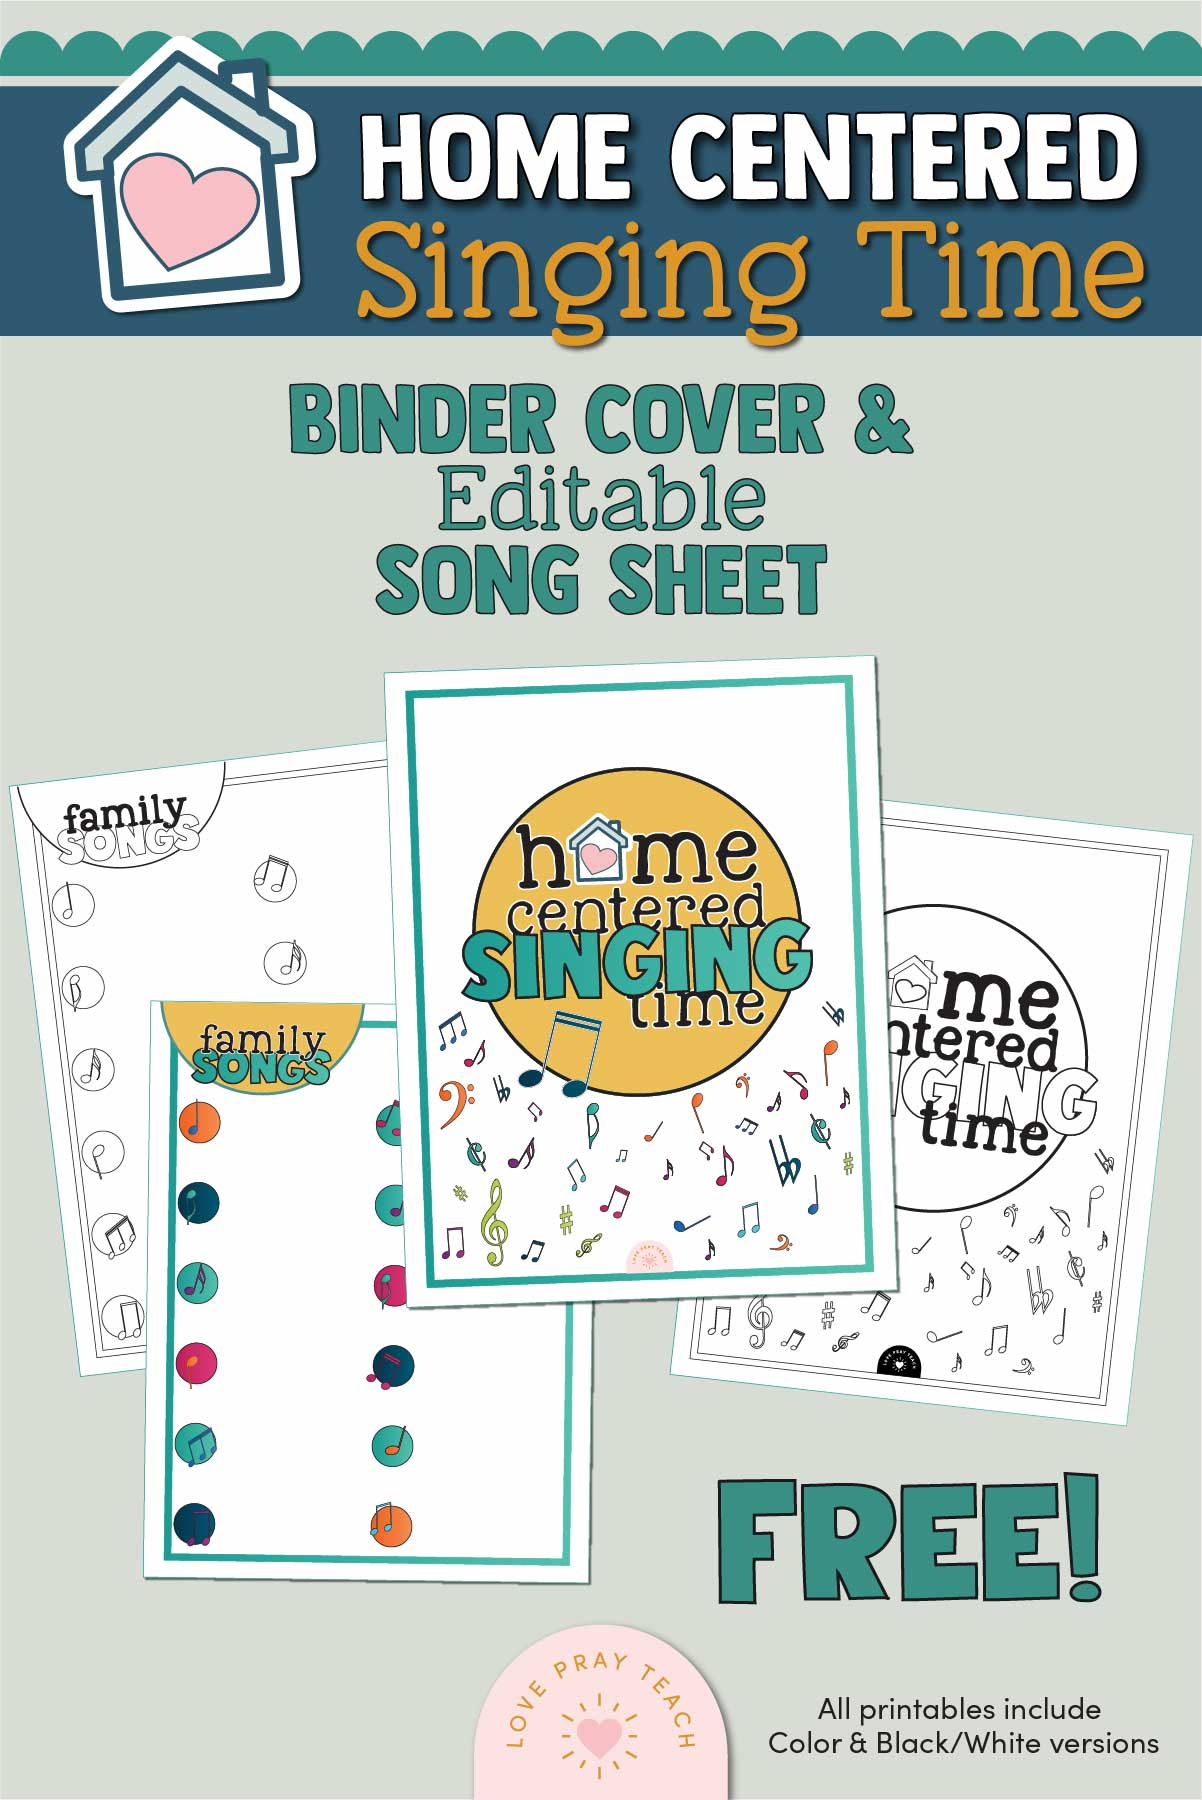 home-centered-singing-time-binder